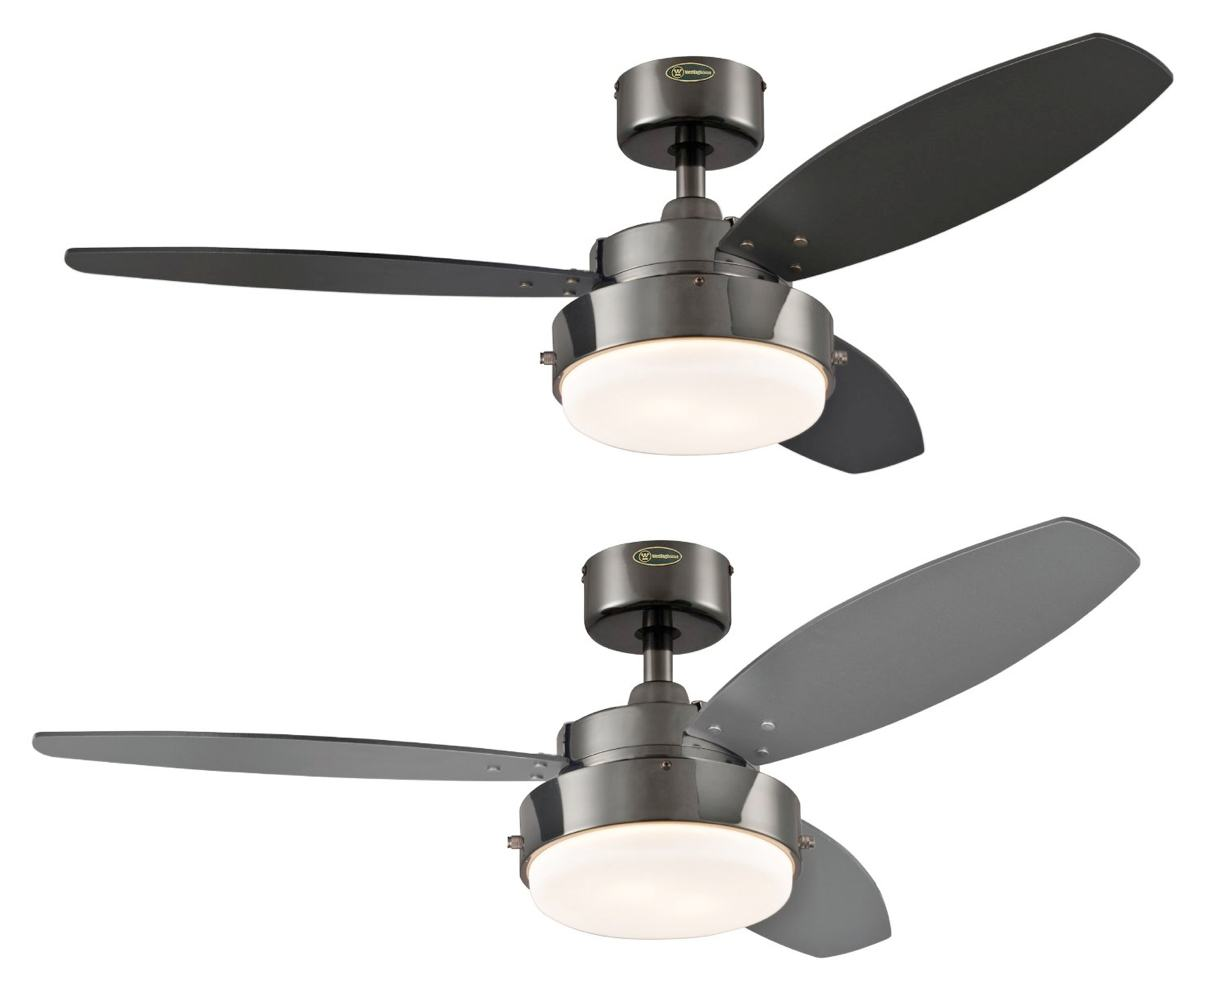 Westinghouse 2 Light 42 Reversible 3 Blade Indoor Ceiling